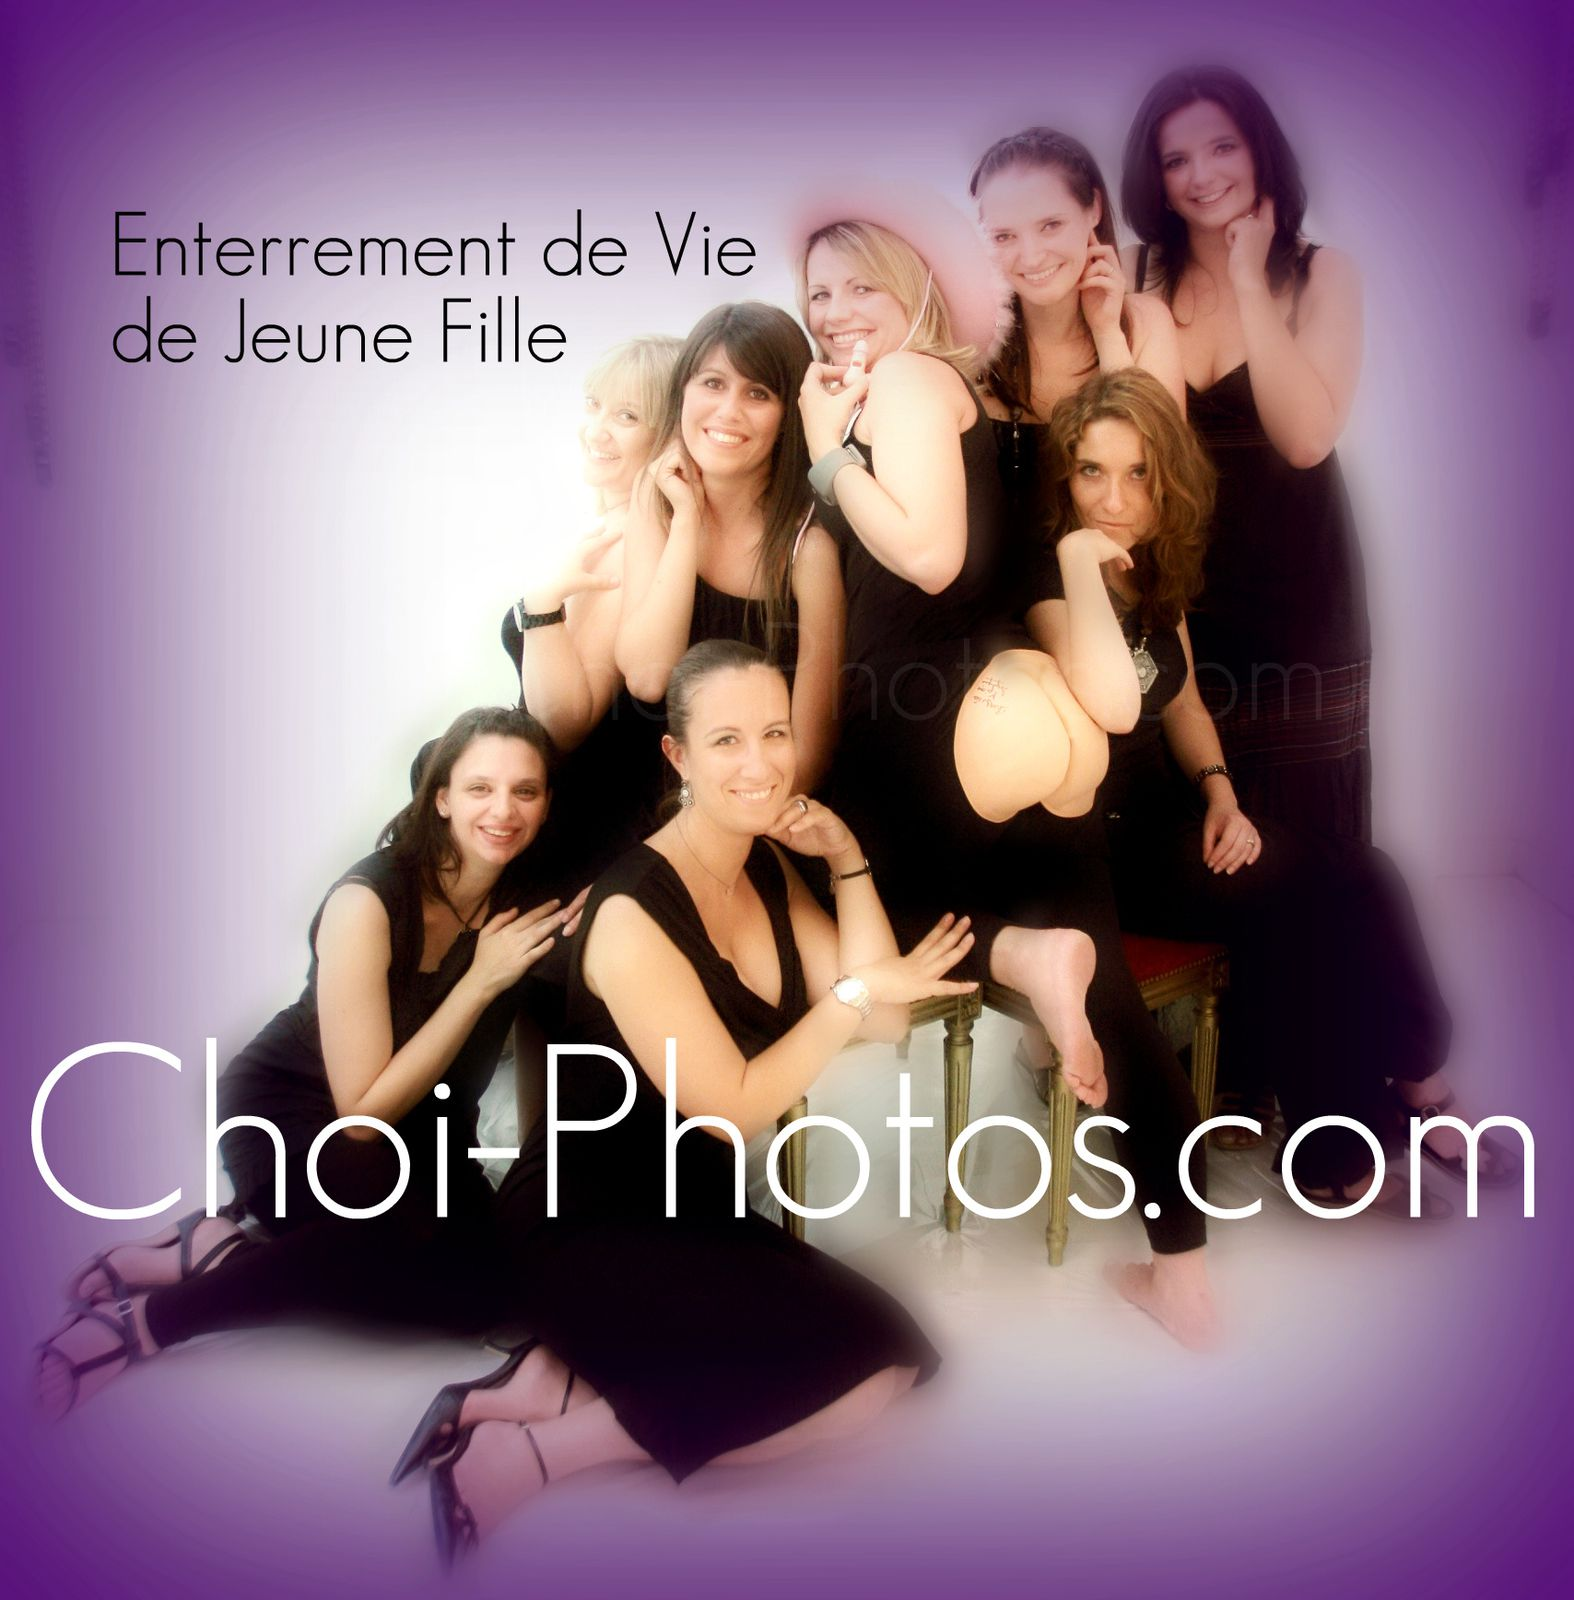 enterrement de vie de jeune fille marseille 01 juillet 2009 choi photos photographe casting. Black Bedroom Furniture Sets. Home Design Ideas